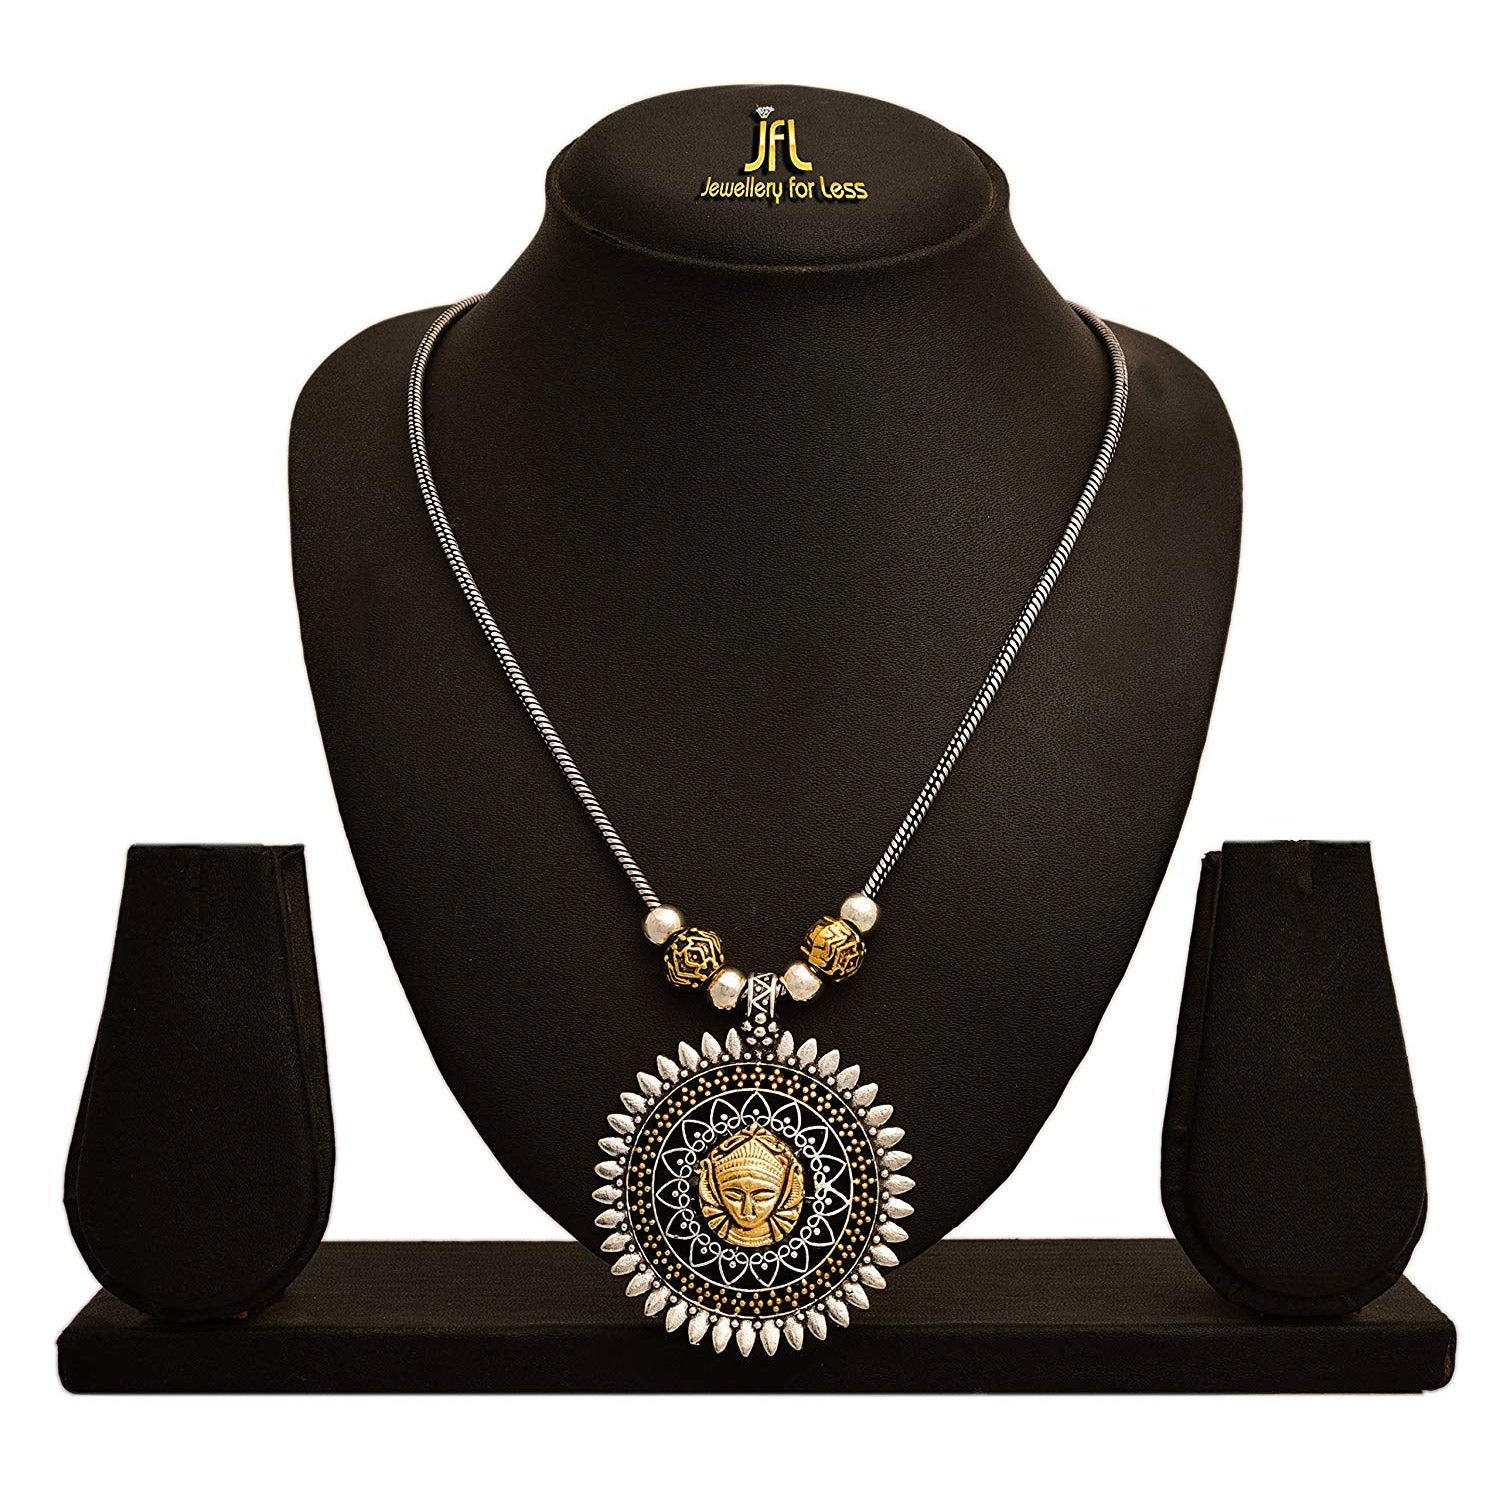 JFL -Traditional Ethnic Handmade German Silver Plated Oxidised Dual Tone with Goddess Durga Designer Necklace for Women.